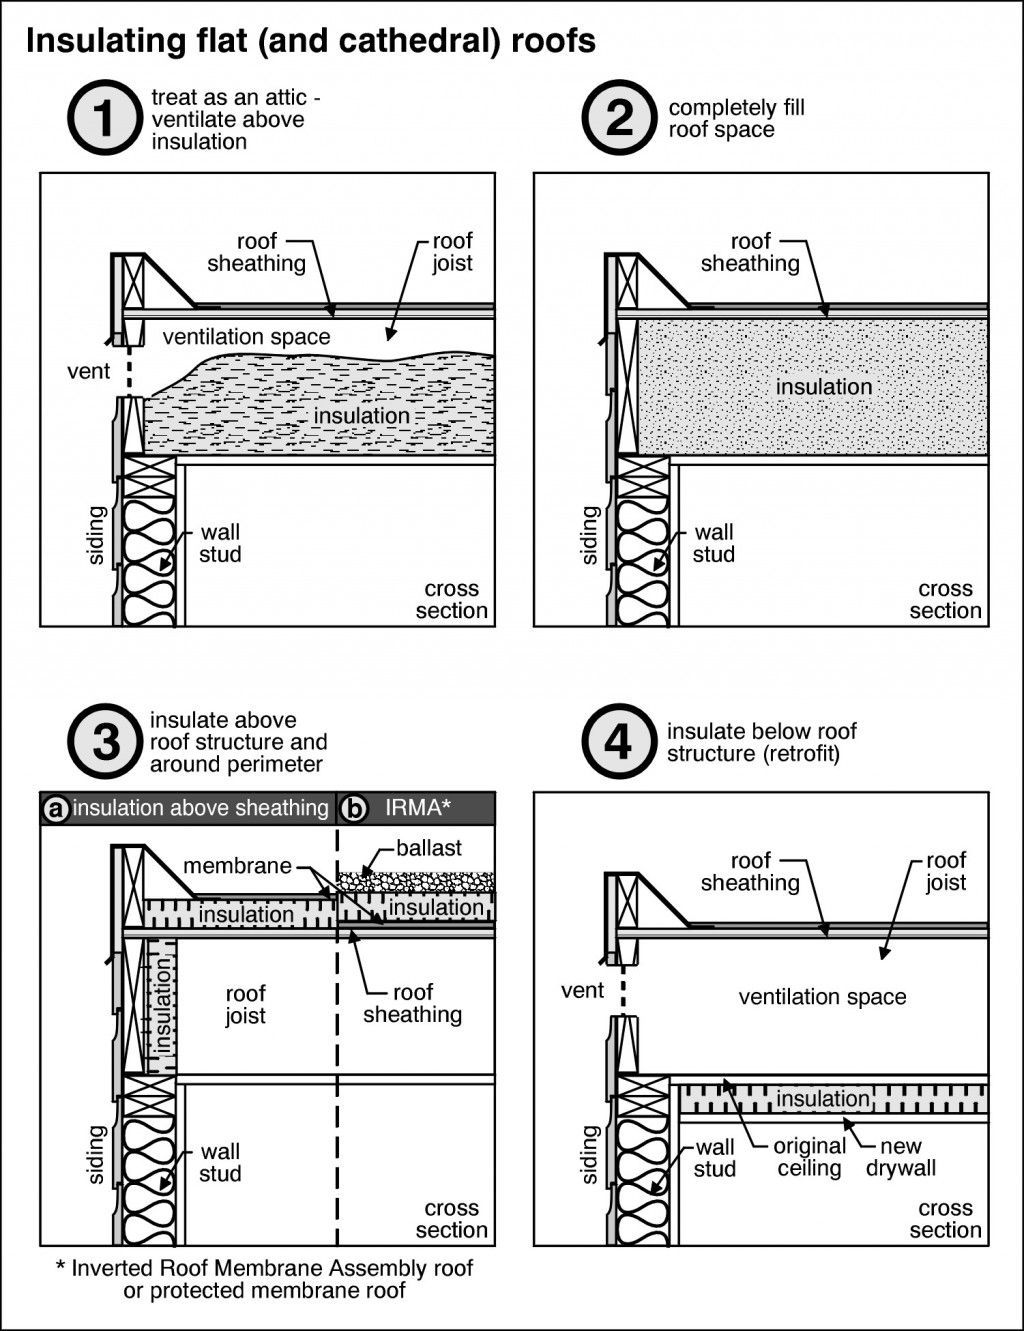 Insulating A Flat Roof Flat Roof Insulation Roof Insulation Flat Roof